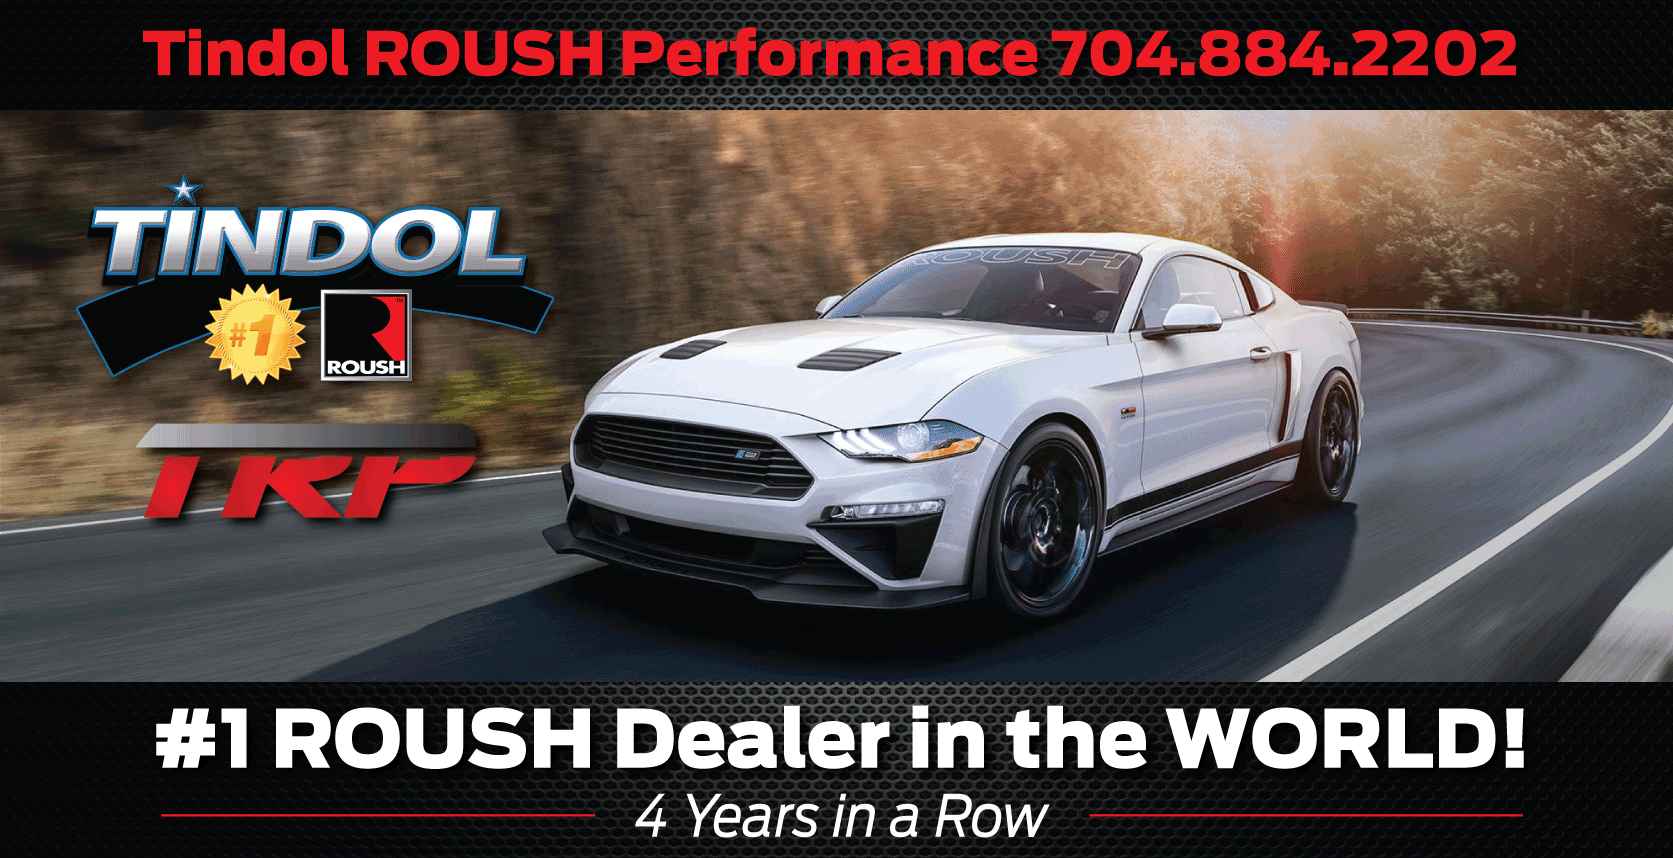 Tindol Roush Performance World S 1 Roush Dealer Roush Dealer